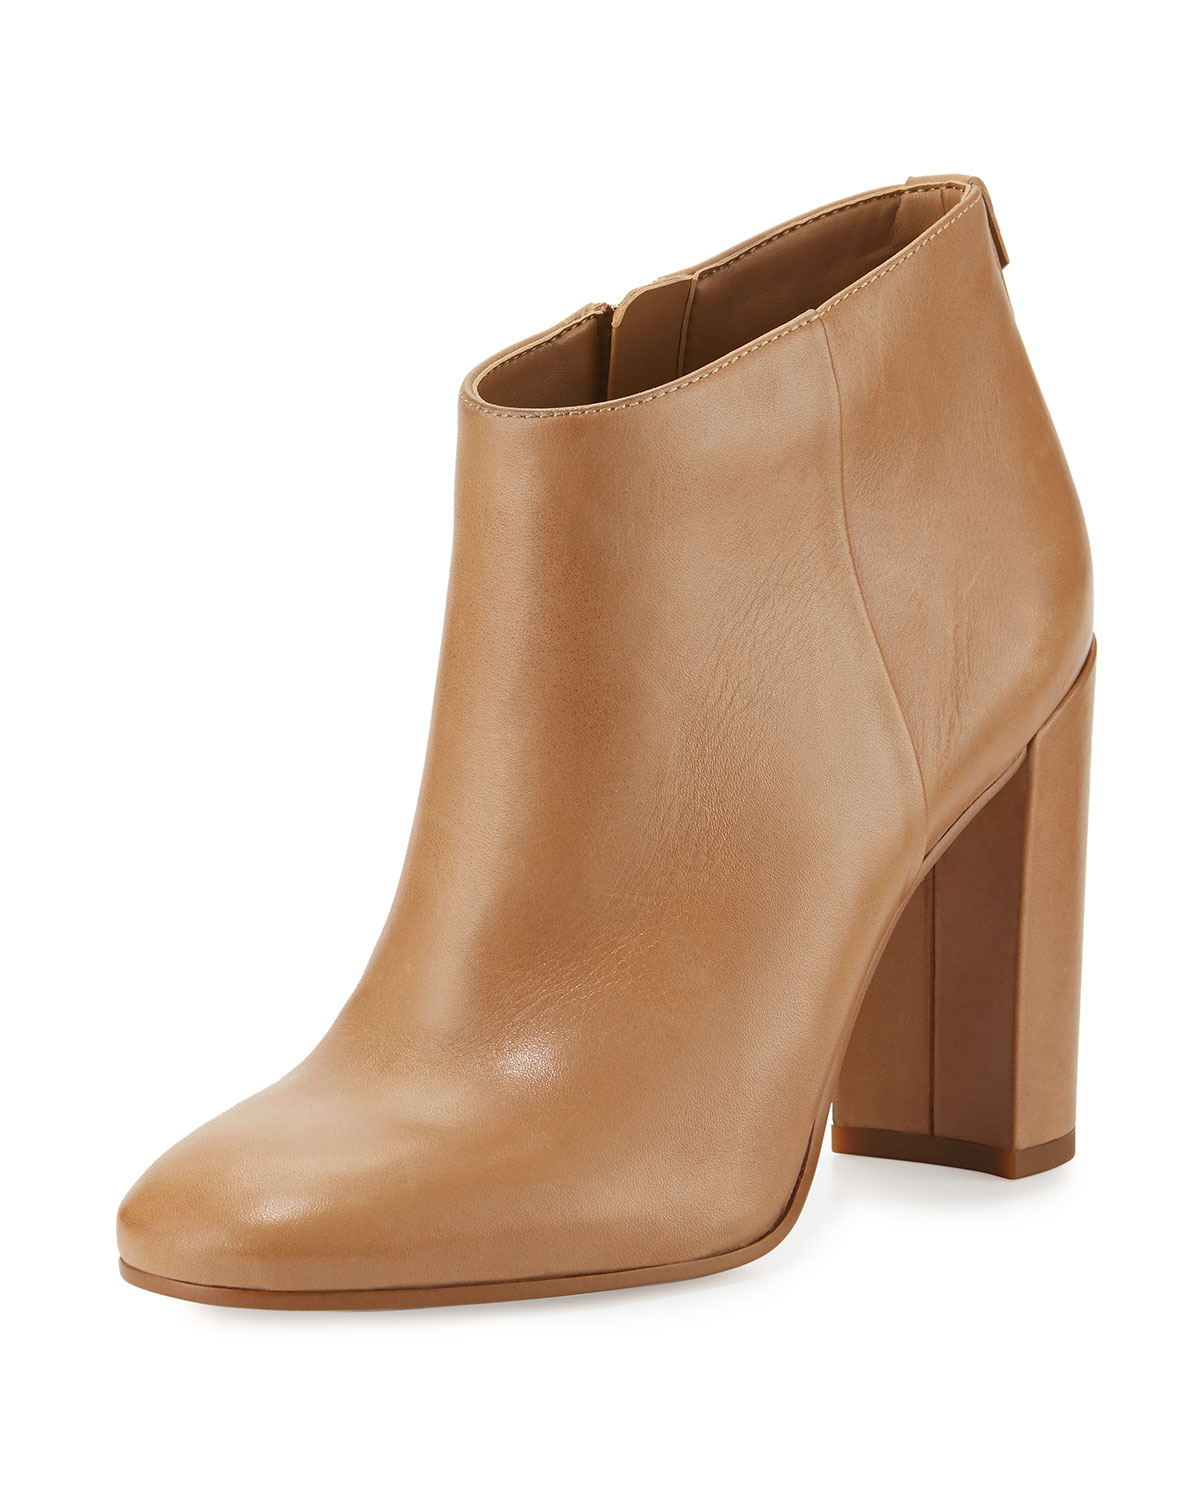 d3c24af9e030ac Sam Edelman Cambell Leather 95mm Ankle Boots